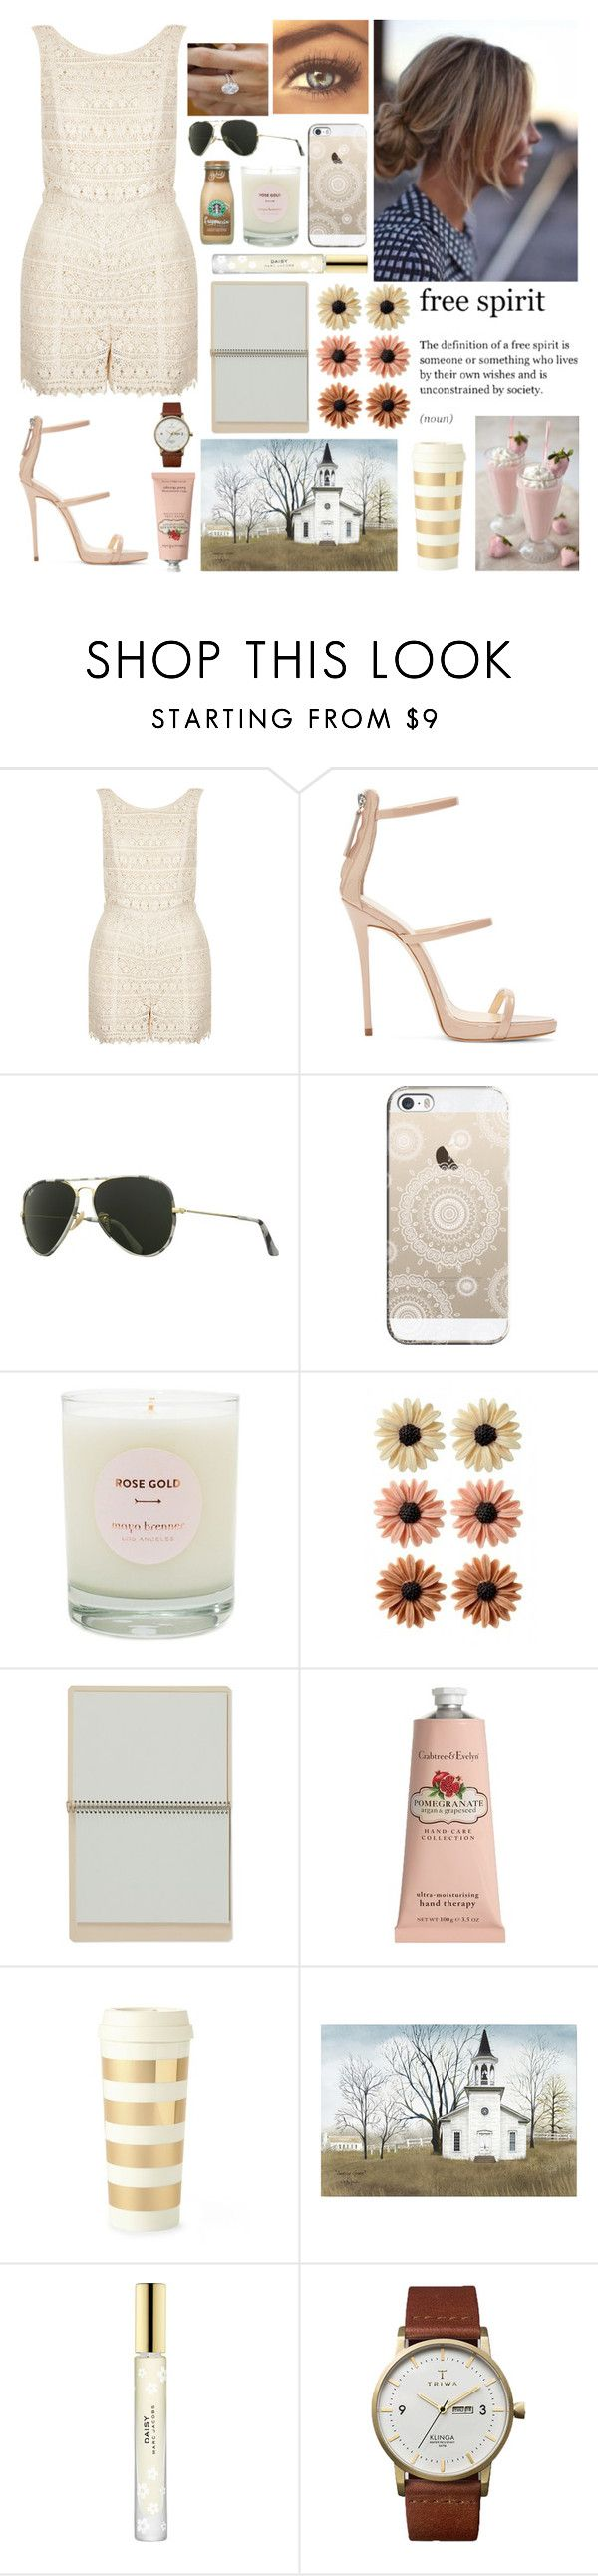 """Peach"" by coloradomustang0312 ❤ liked on Polyvore featuring Topshop, Giuseppe Zanotti, Ray-Ban, Casetify, Maya Brenner Designs, mae, Crabtree & Evelyn, Kate Spade, Marc Jacobs and Triwa"